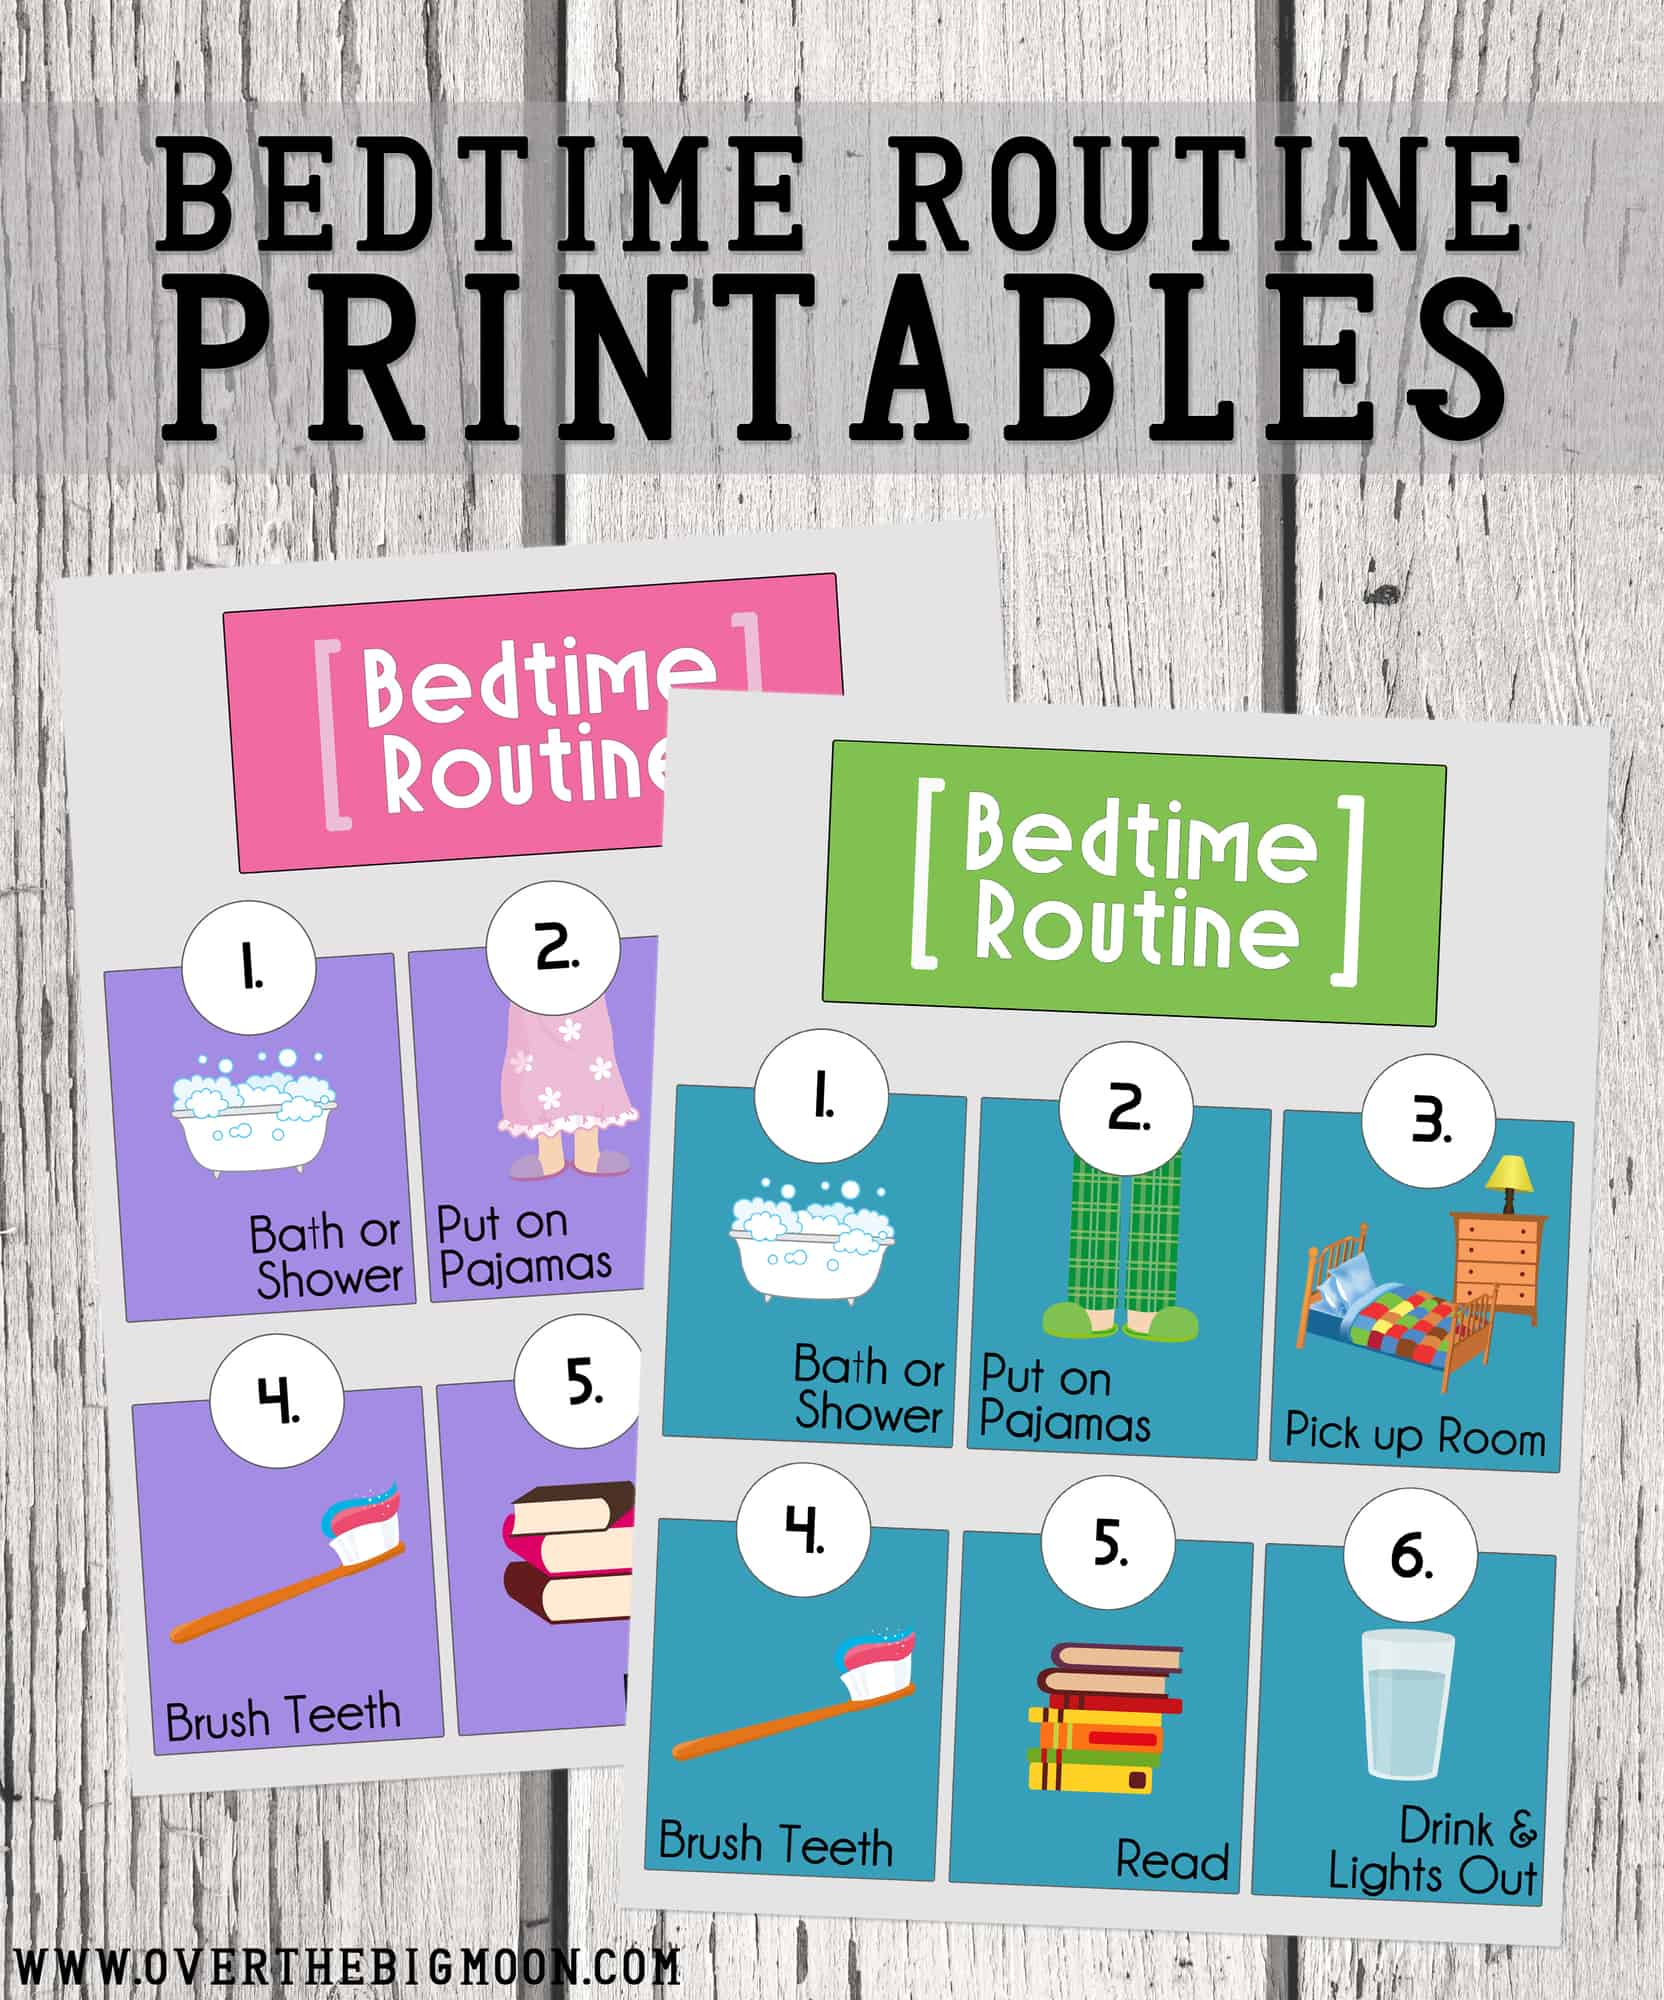 bedtime-routine-printables